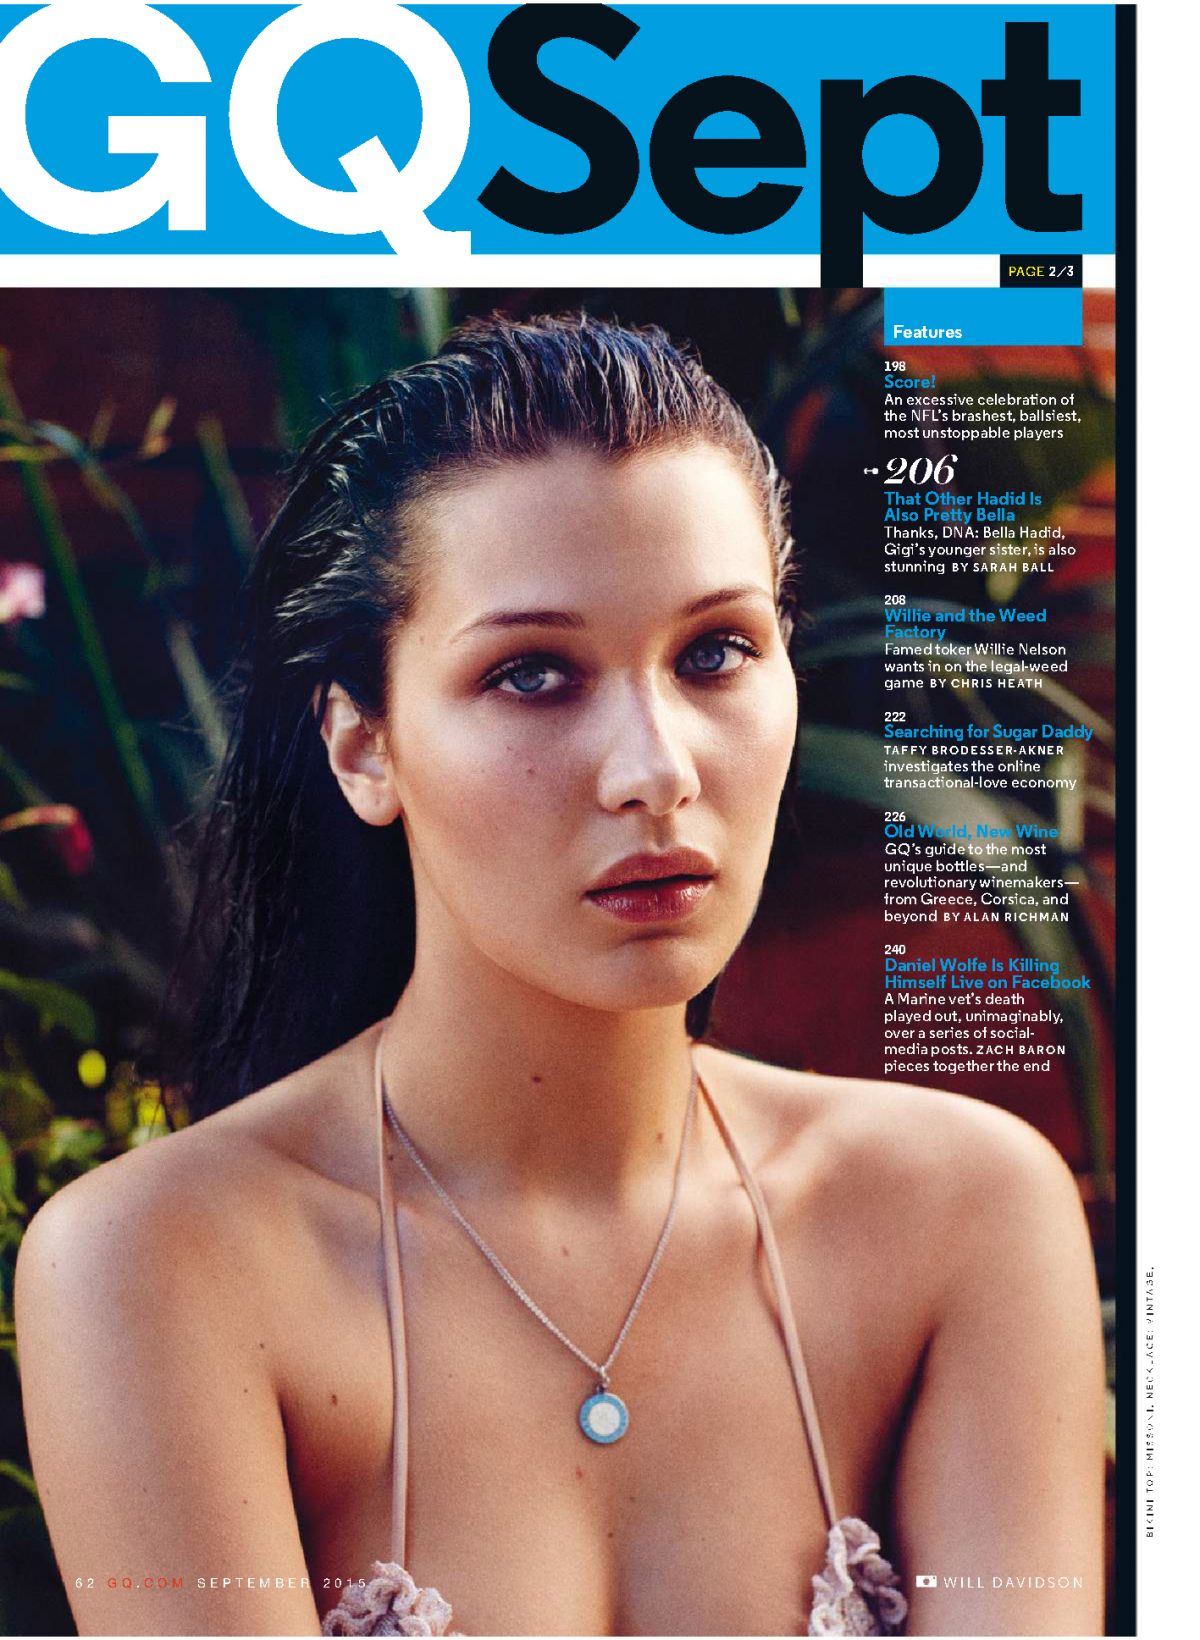 BELLA HADID in GQ Magazine, September 2015 Issue